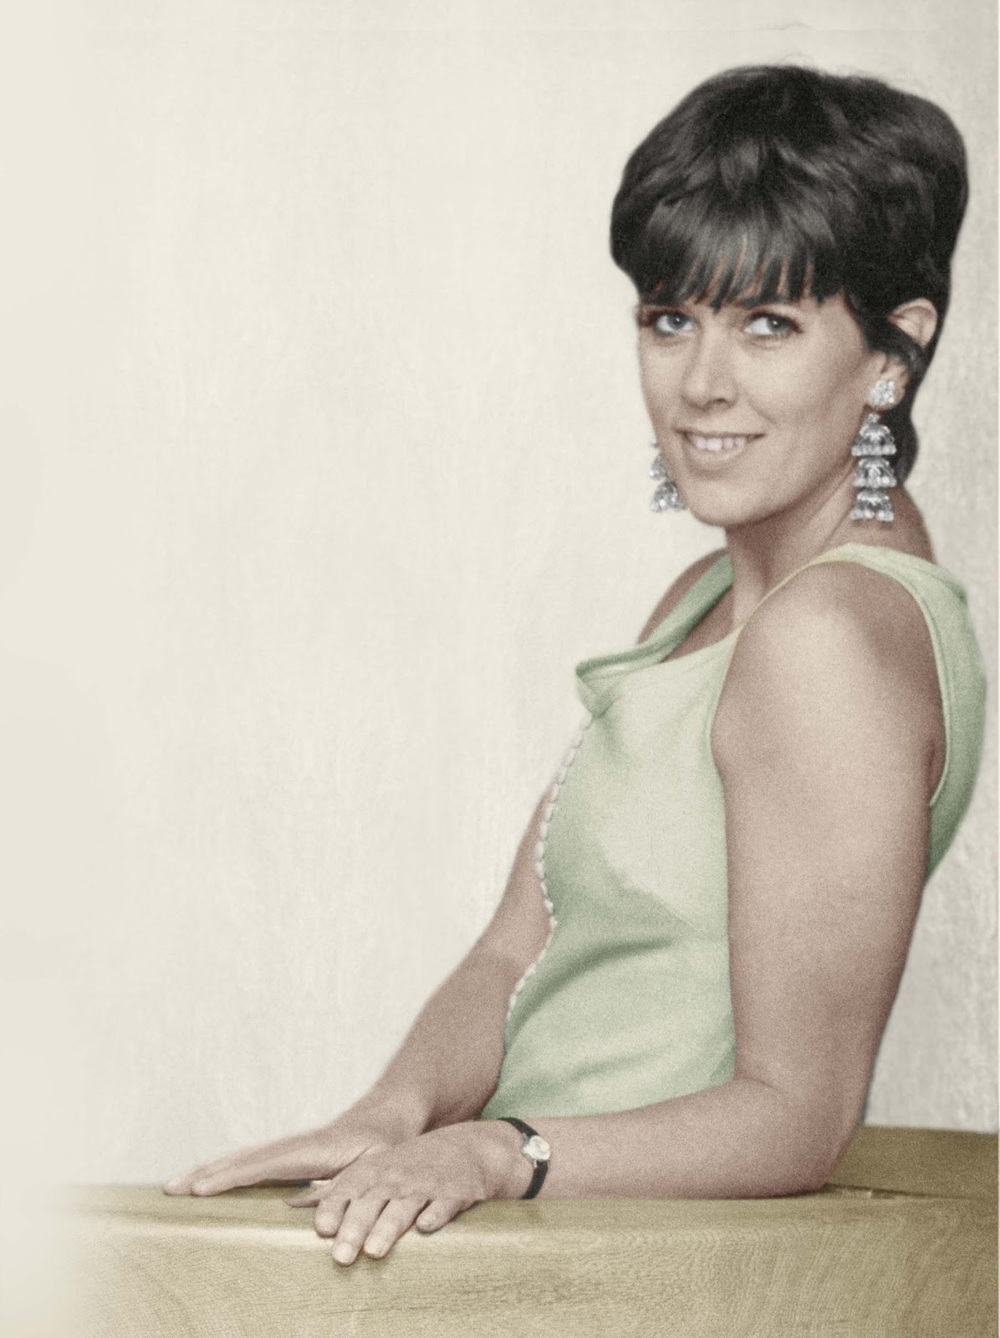 Prue Leith in the late sixties, in her late twenties. Today she retains her good looks but continues to use well-chosen thoughts, words and actions to achieve soaring success... all securely buttressed with love, of course!